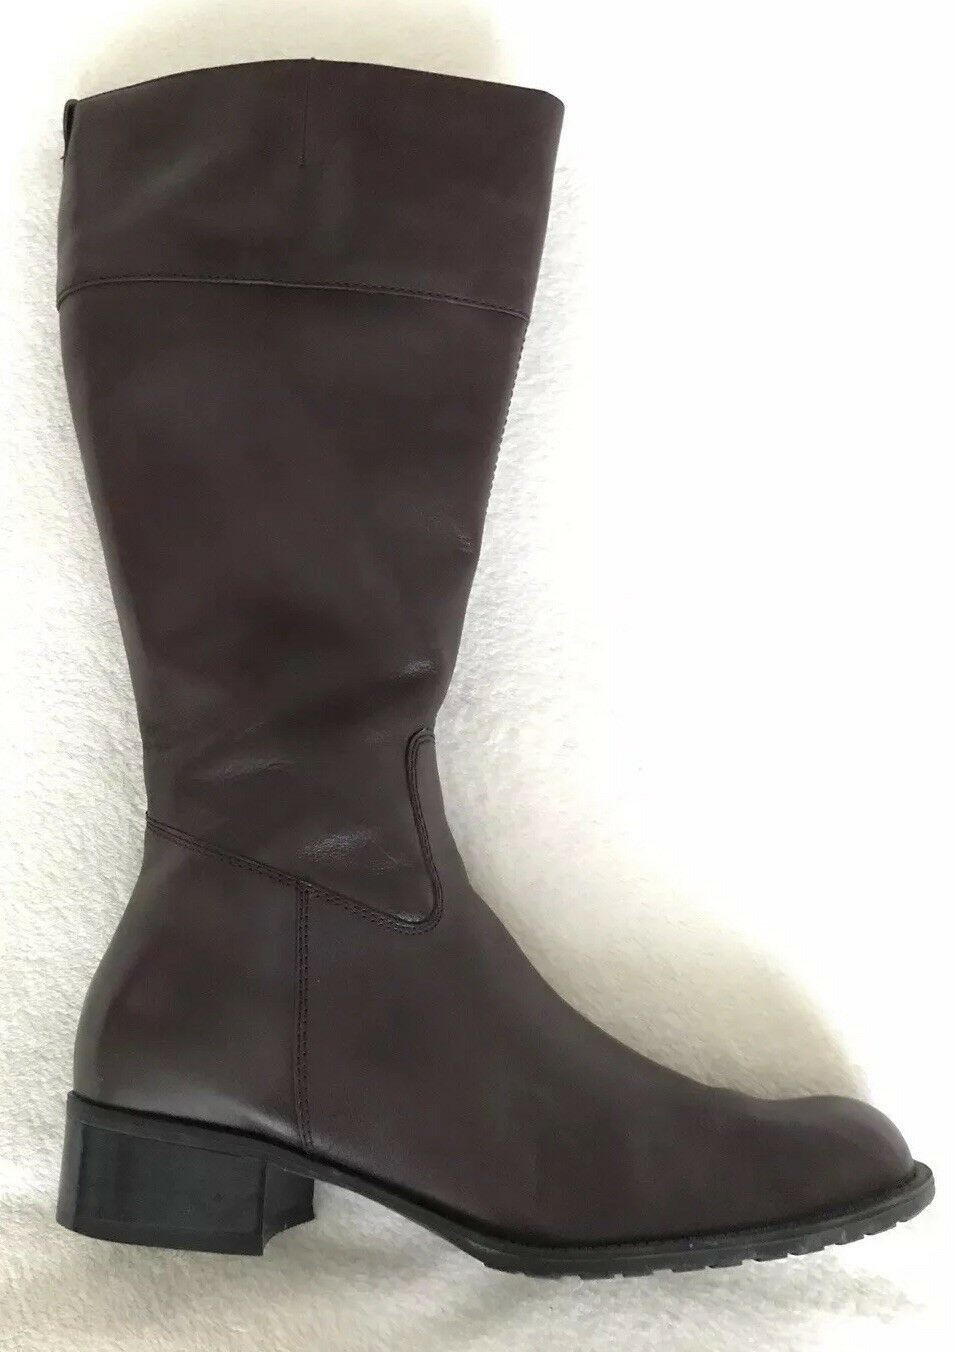 Gorgeous Caravelle Brown Leather Knee Boots UK 7